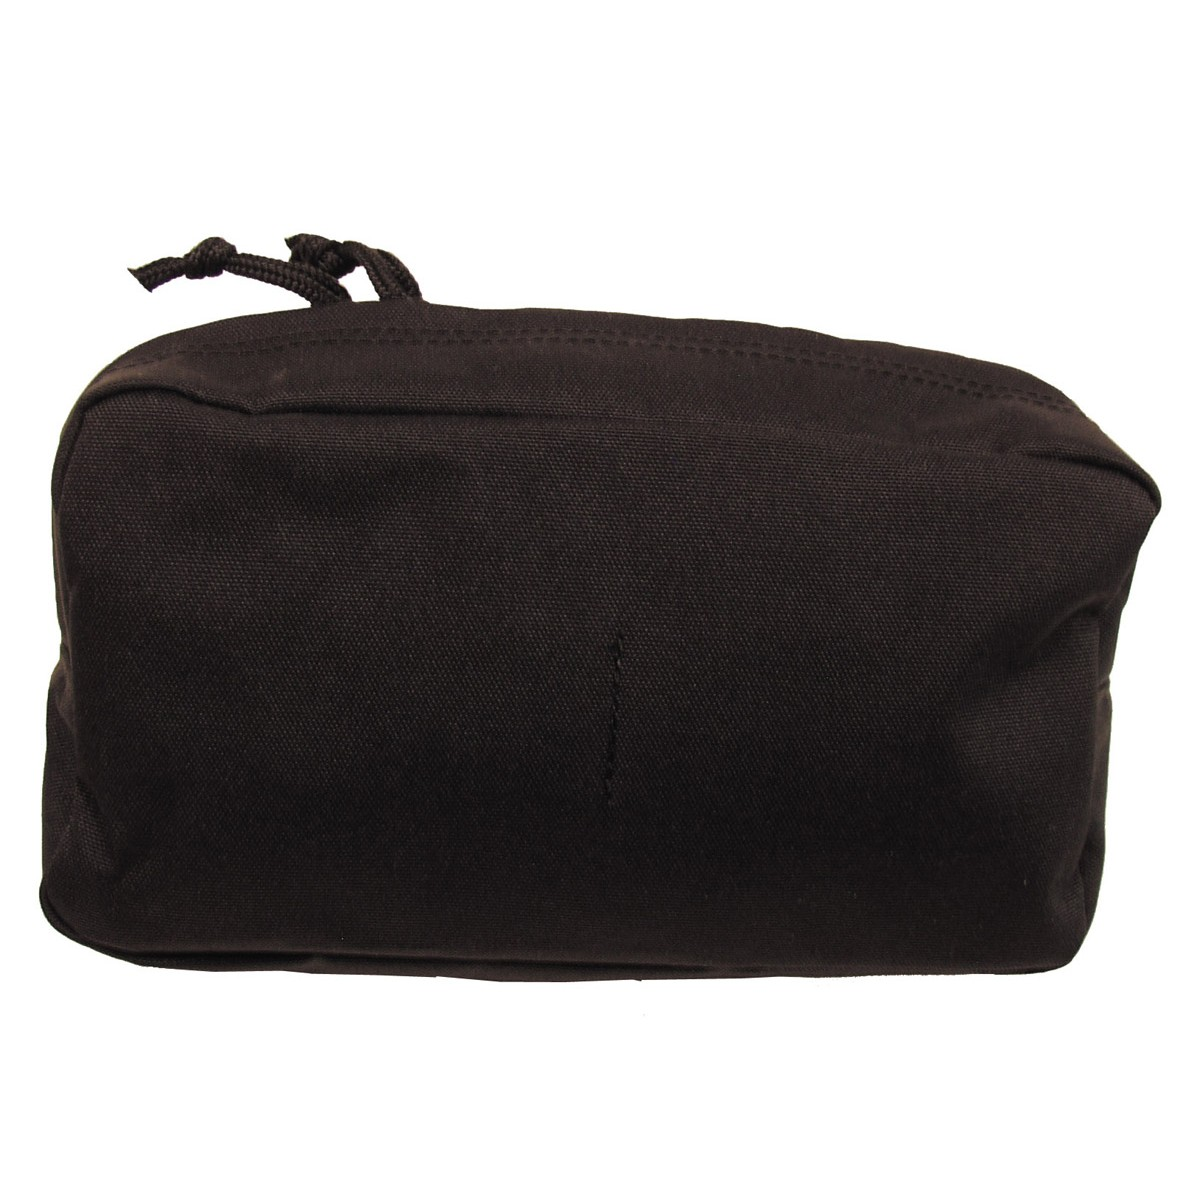 Tactical Utility Mollle Large Pouch - Black